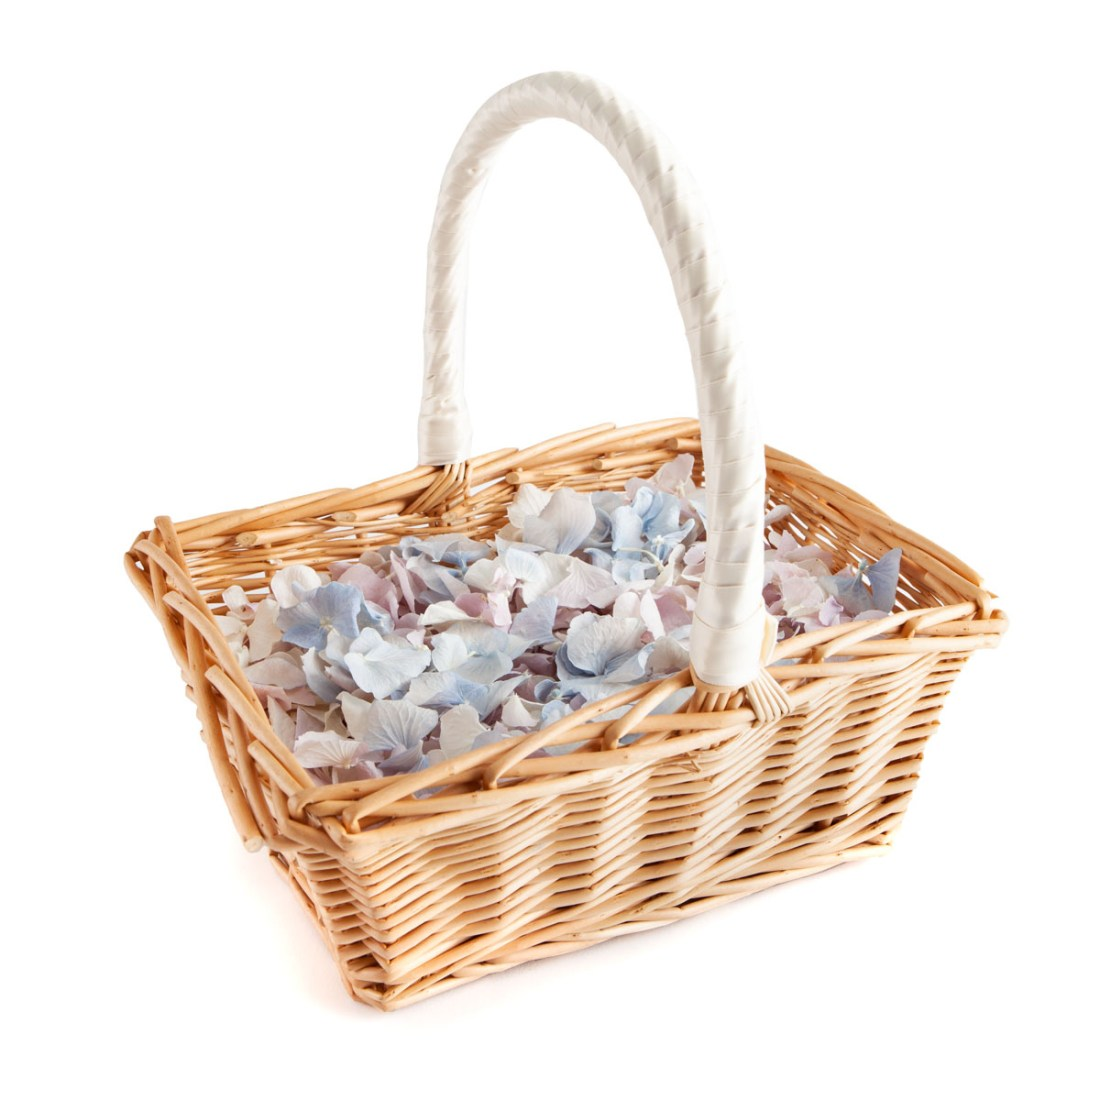 Lilac, Blue & White Hydrangea Petals - Rectangular Flower Girl Basket